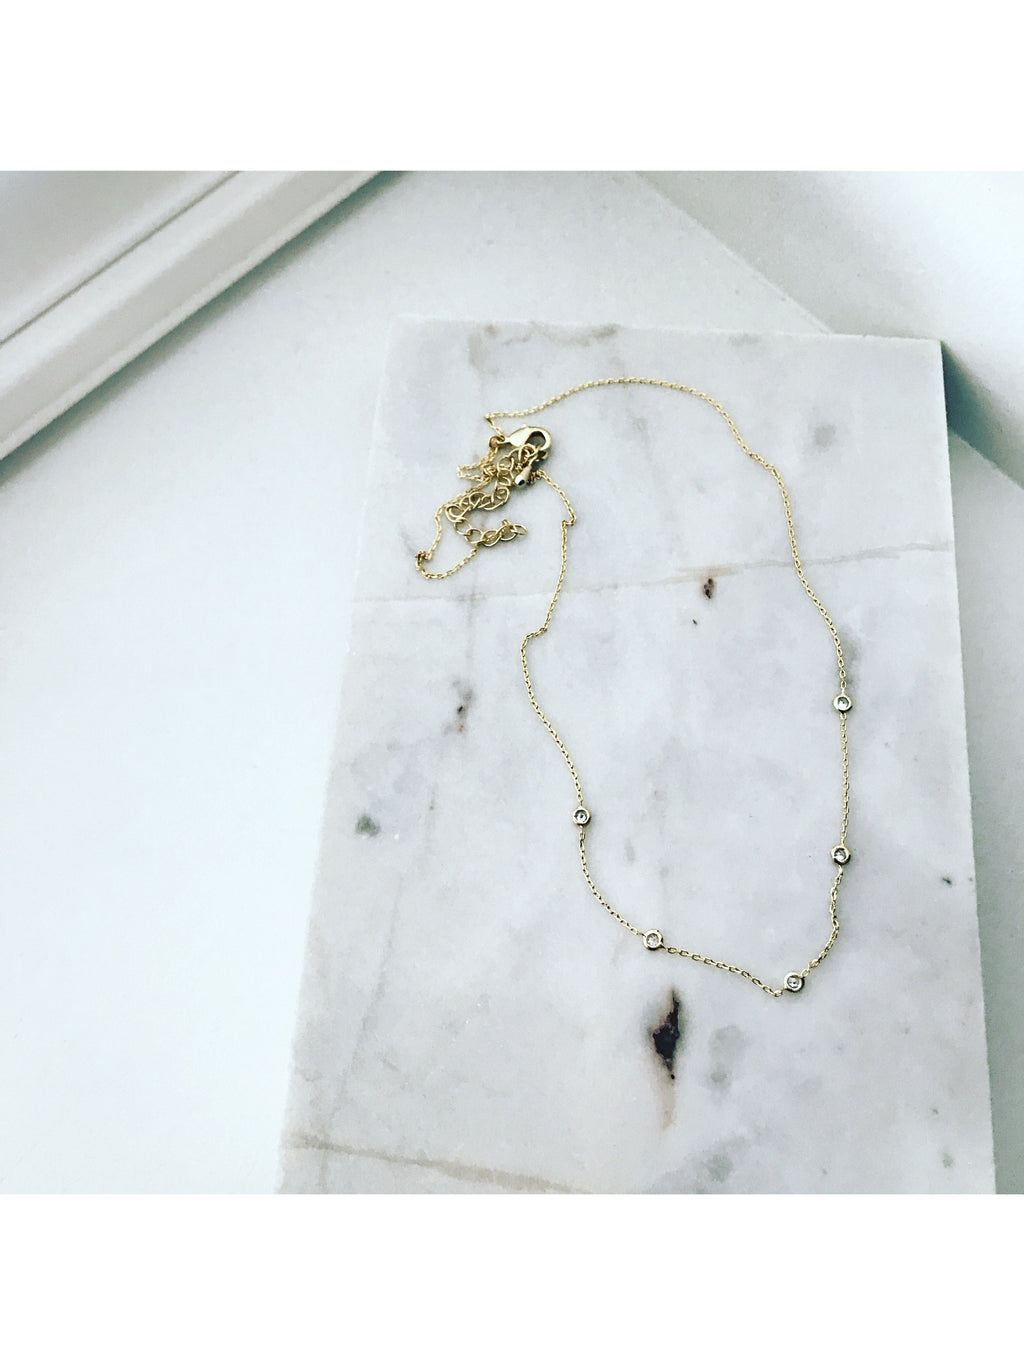 Floating CZ Necklace